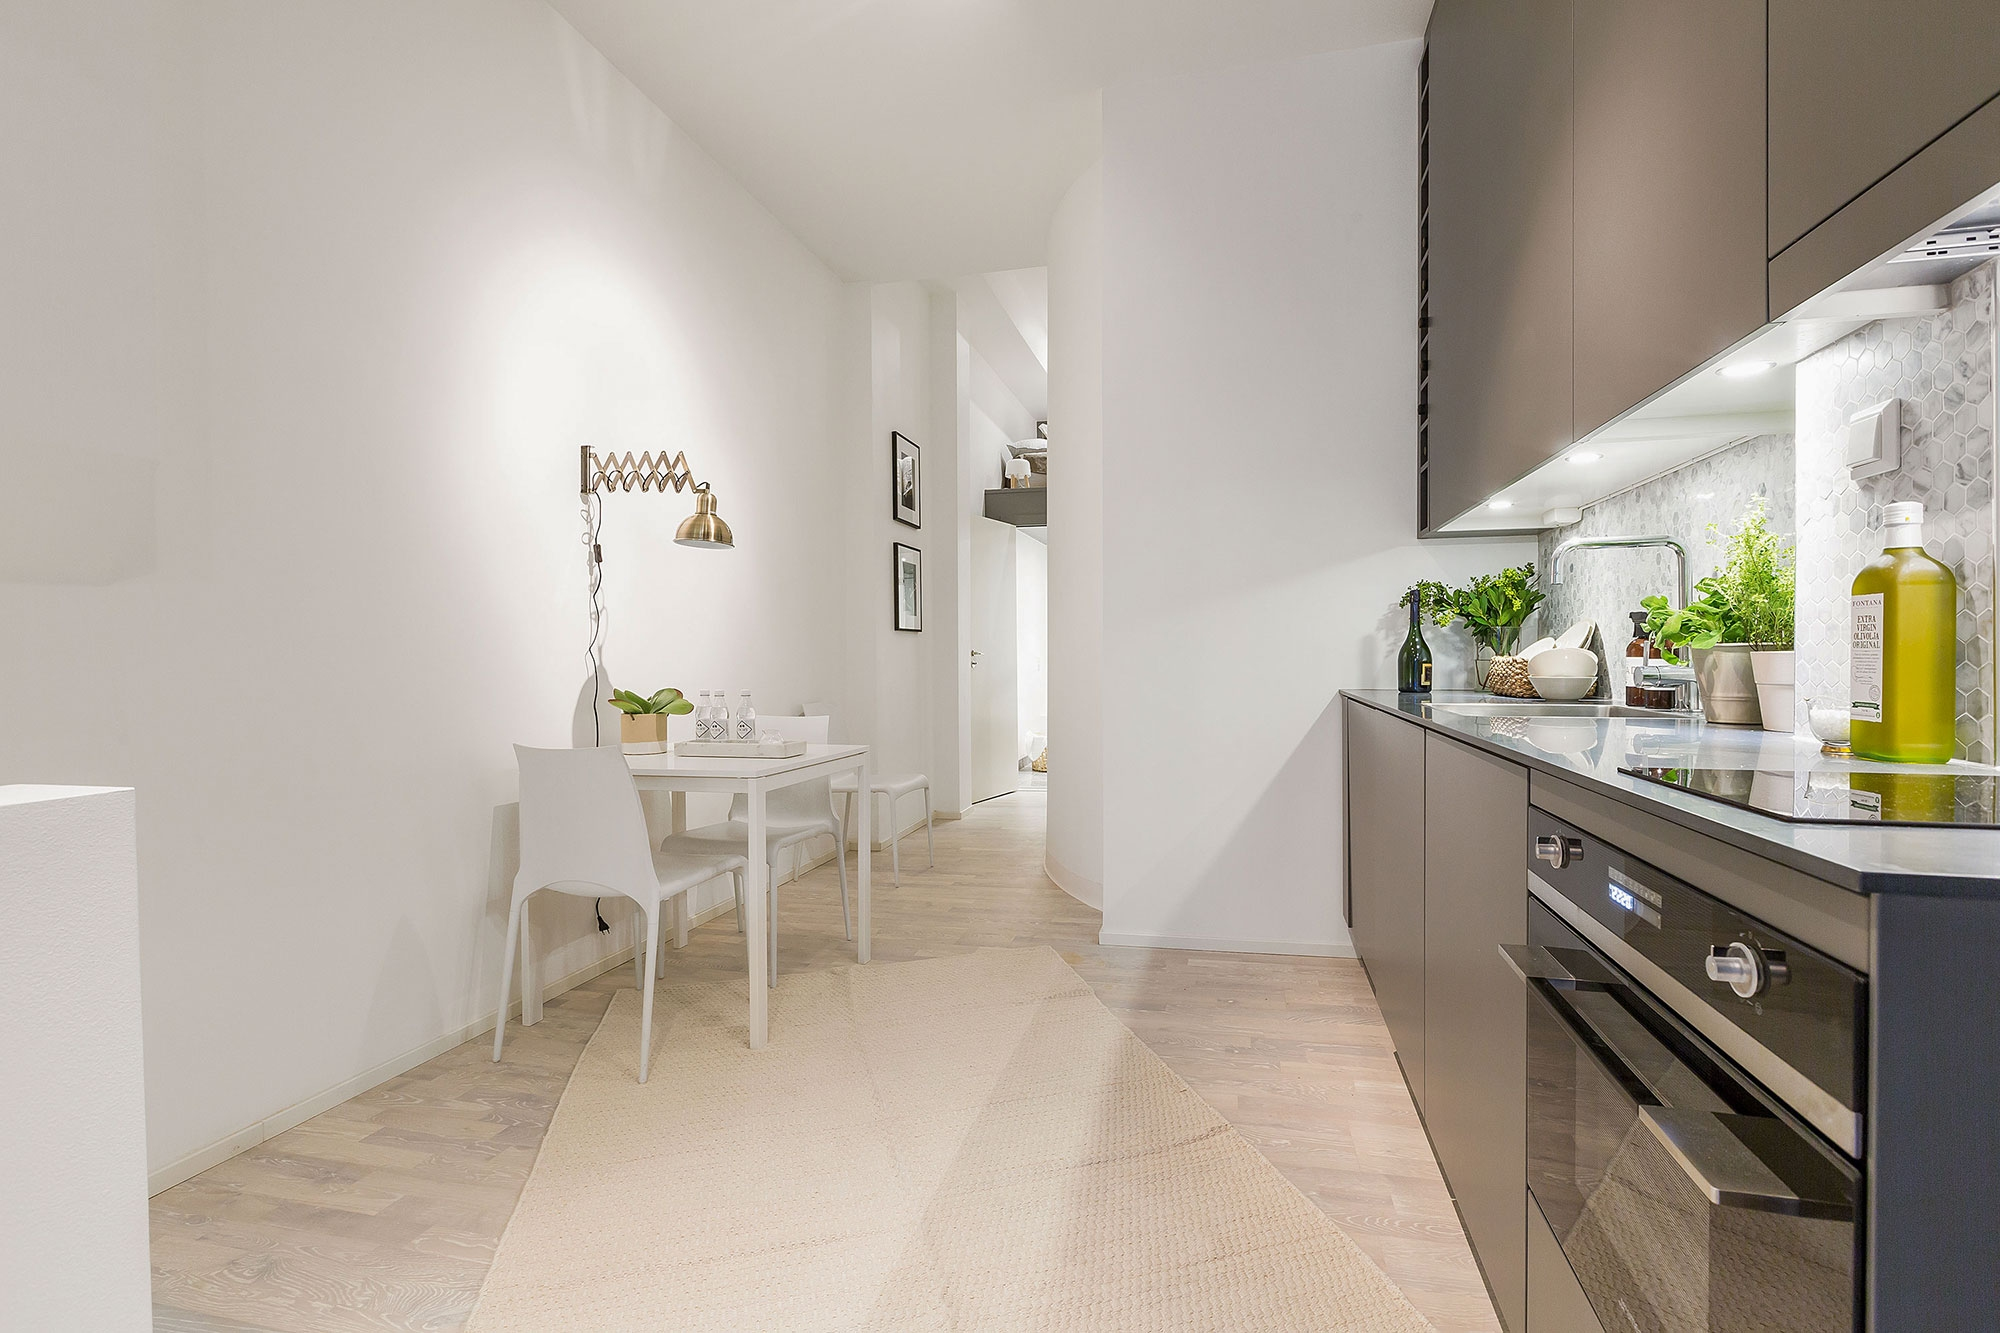 Apartments and Condos Design Projects 2016. eco design for the hi-tech kitchen